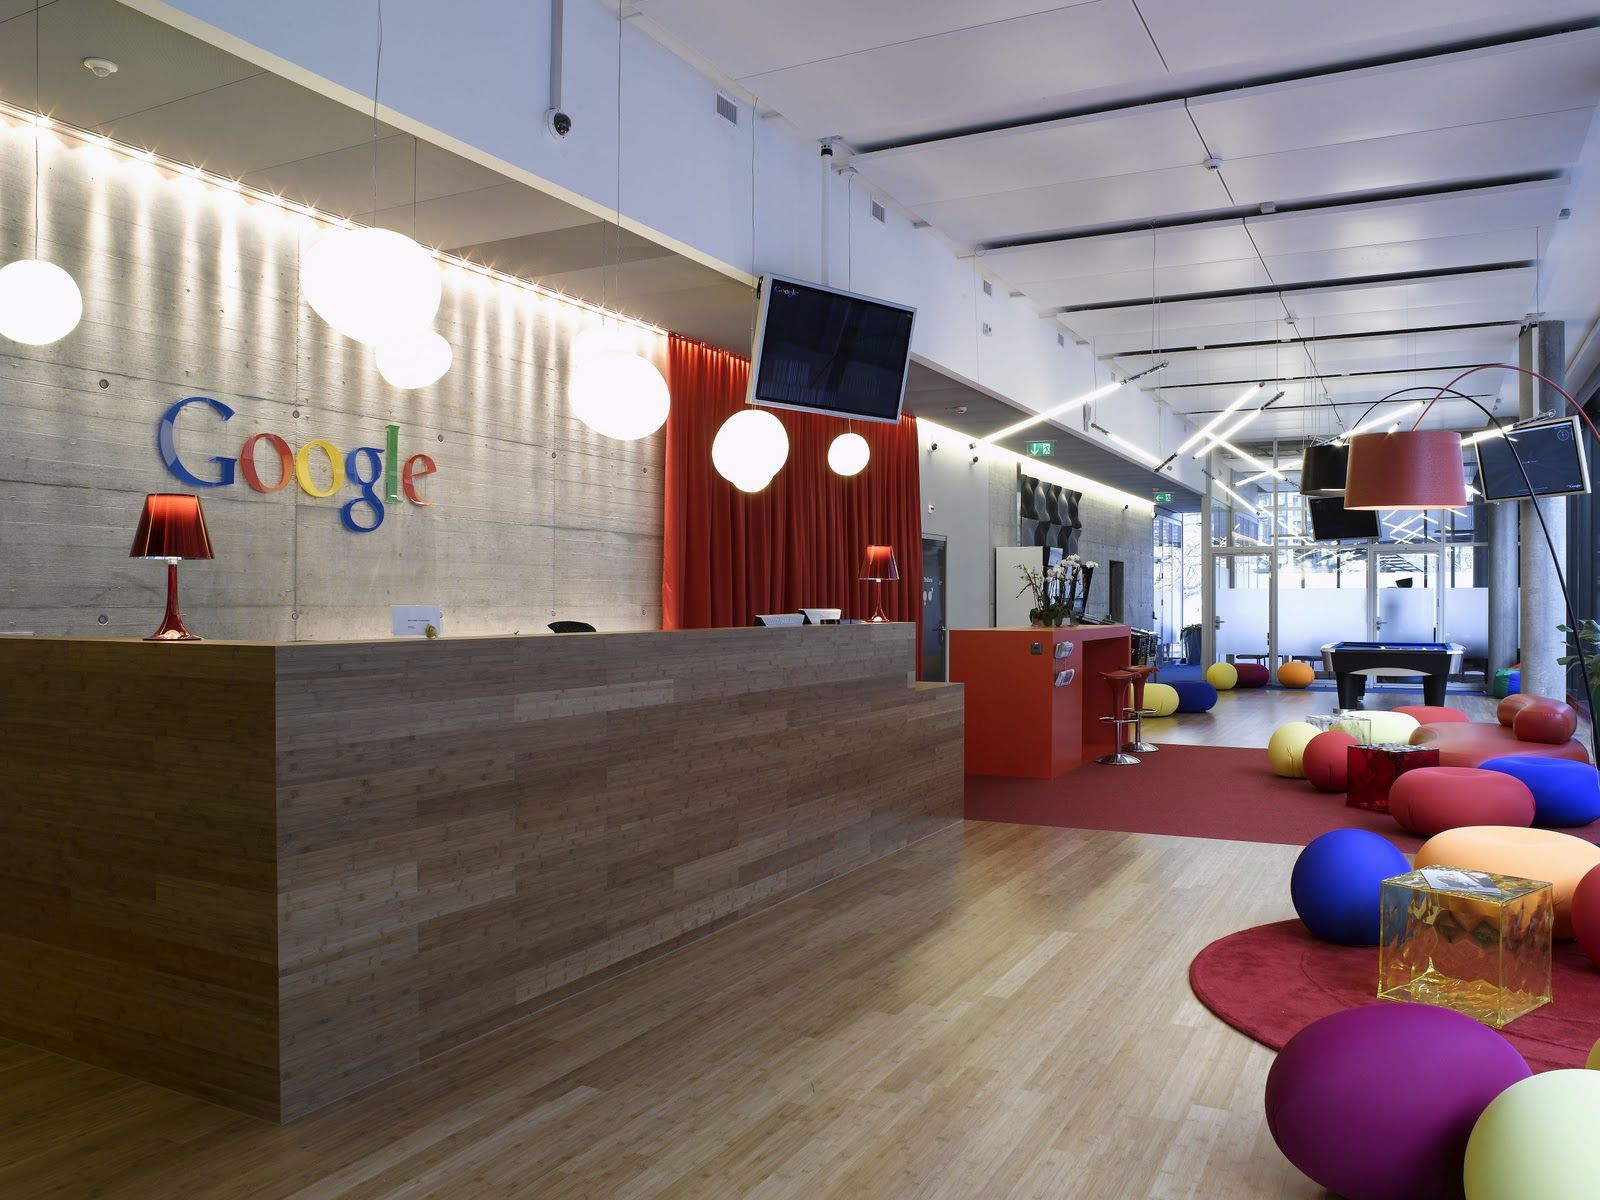 Interior Awesome Google fice Lobby With Colorful Beanless Bag Chair And Cool Laminated Wooden Floor